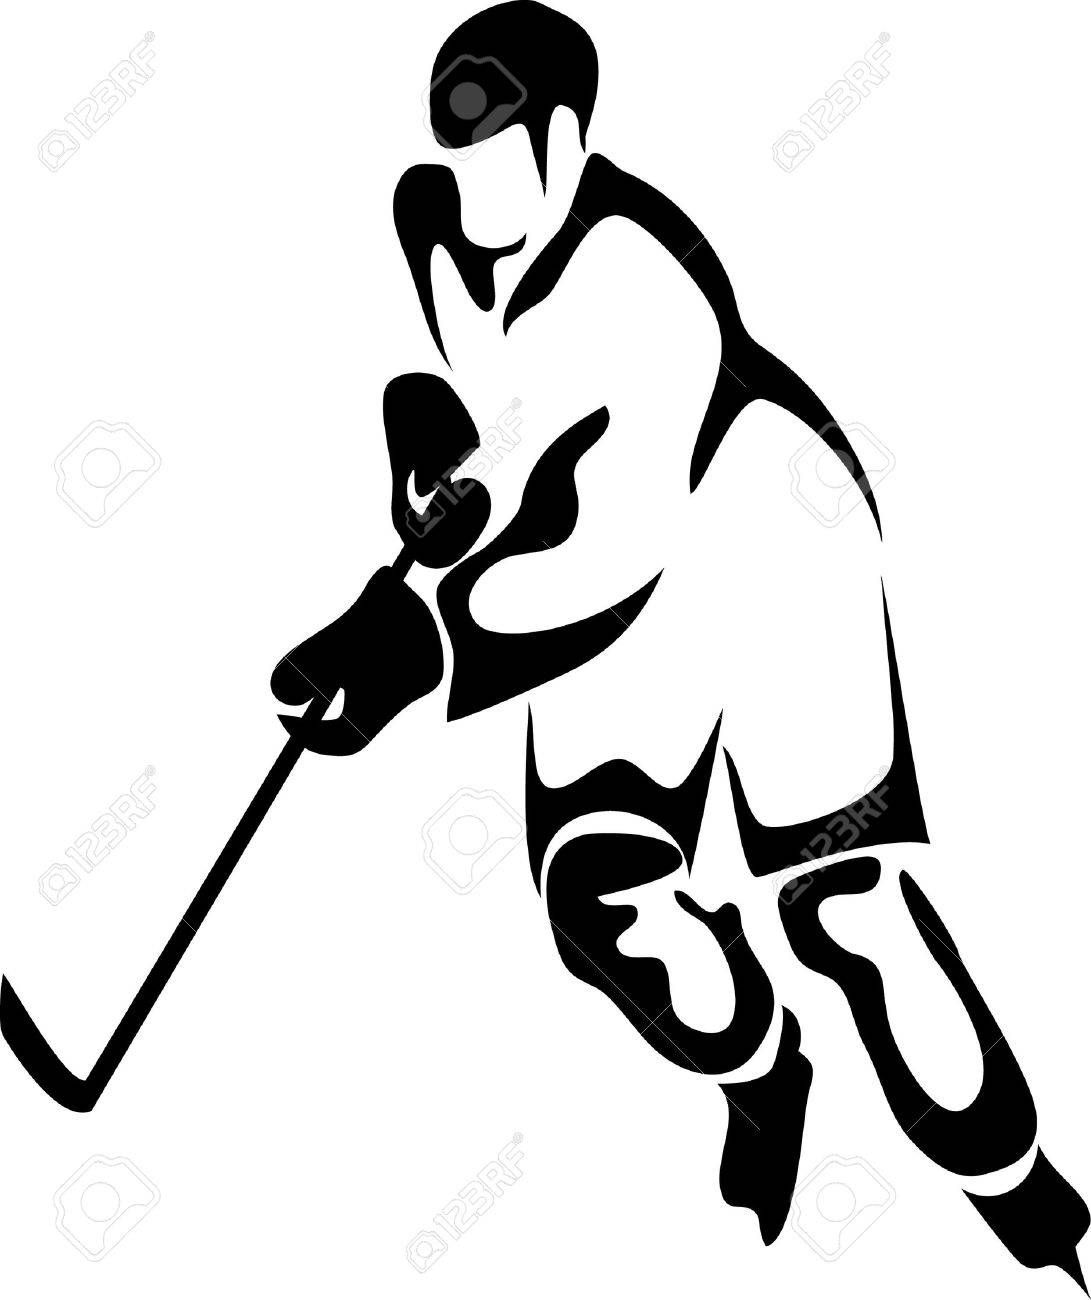 hight resolution of free hockey player clipart 1